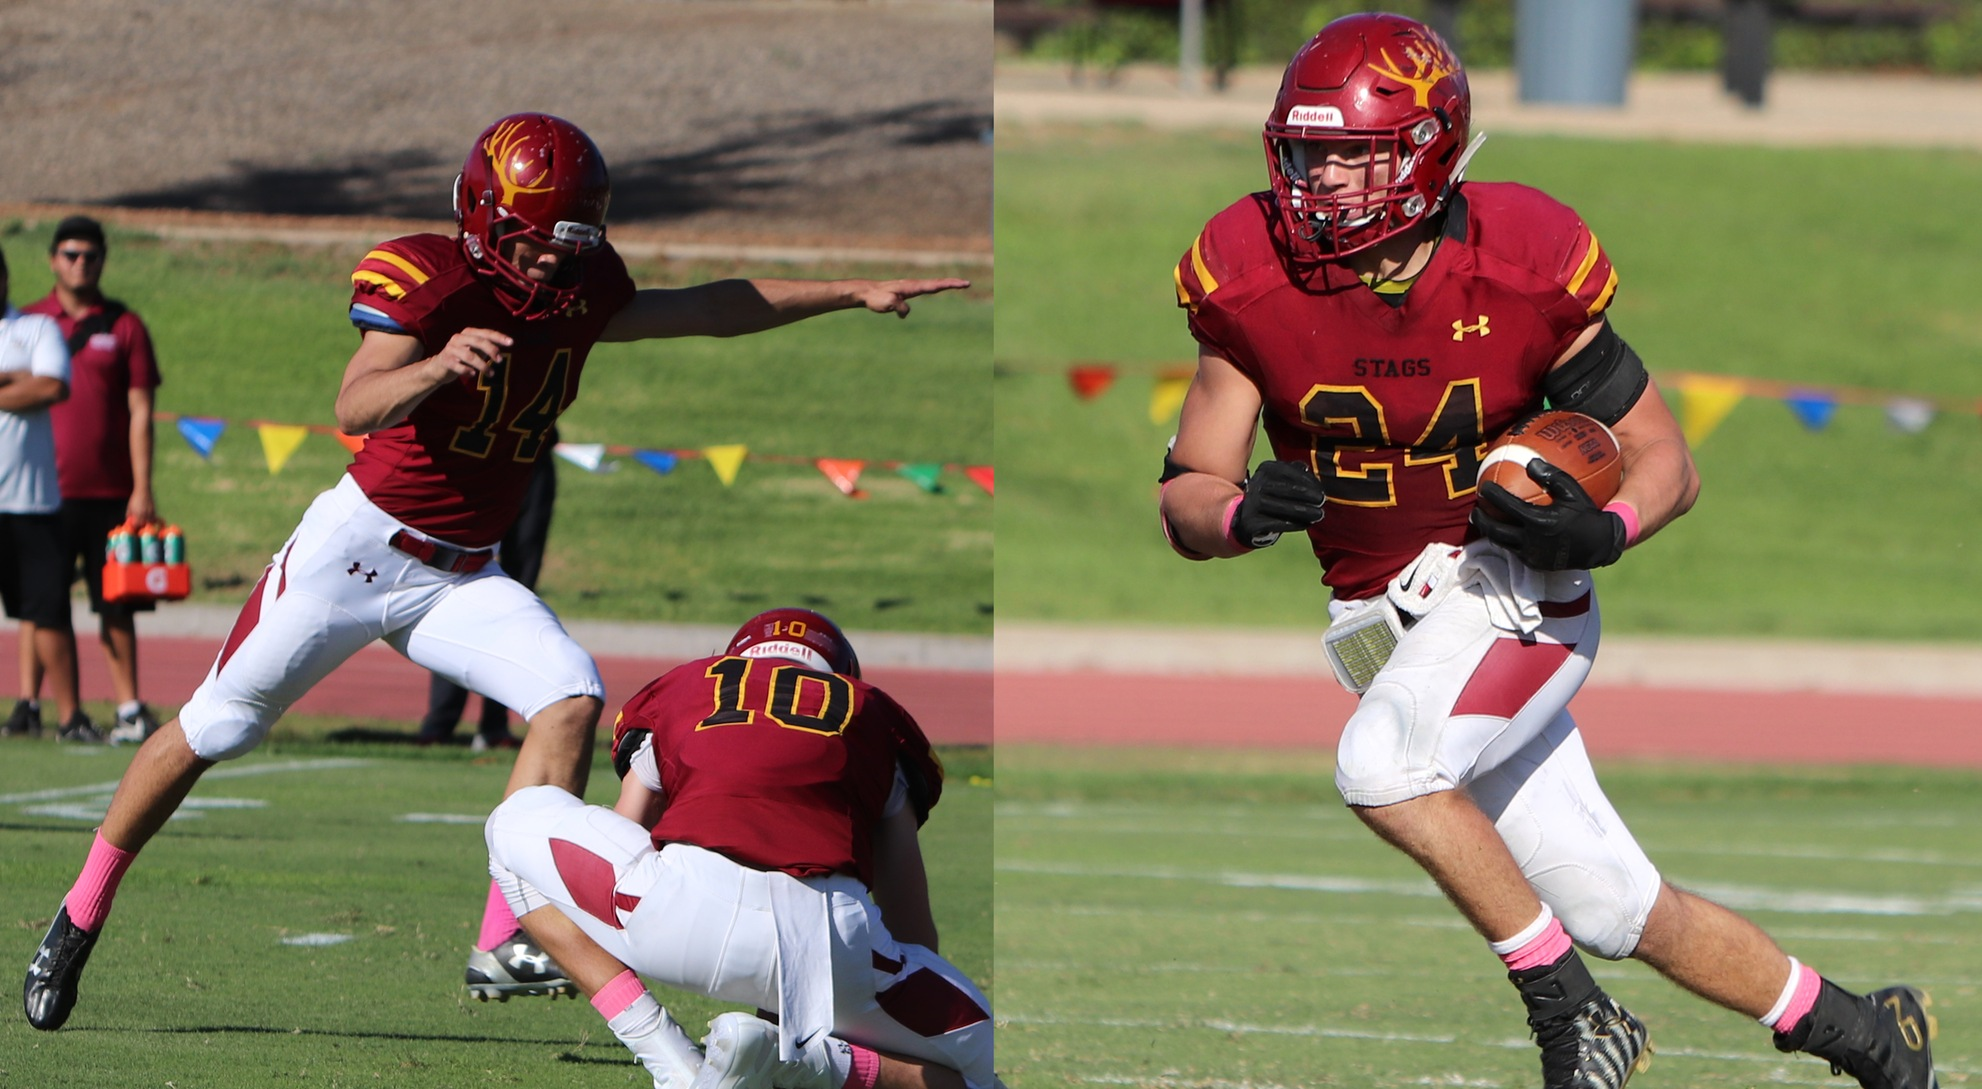 Maiuolo, Cheadle Win SCIAC Player of the Week Honors for CMS Football